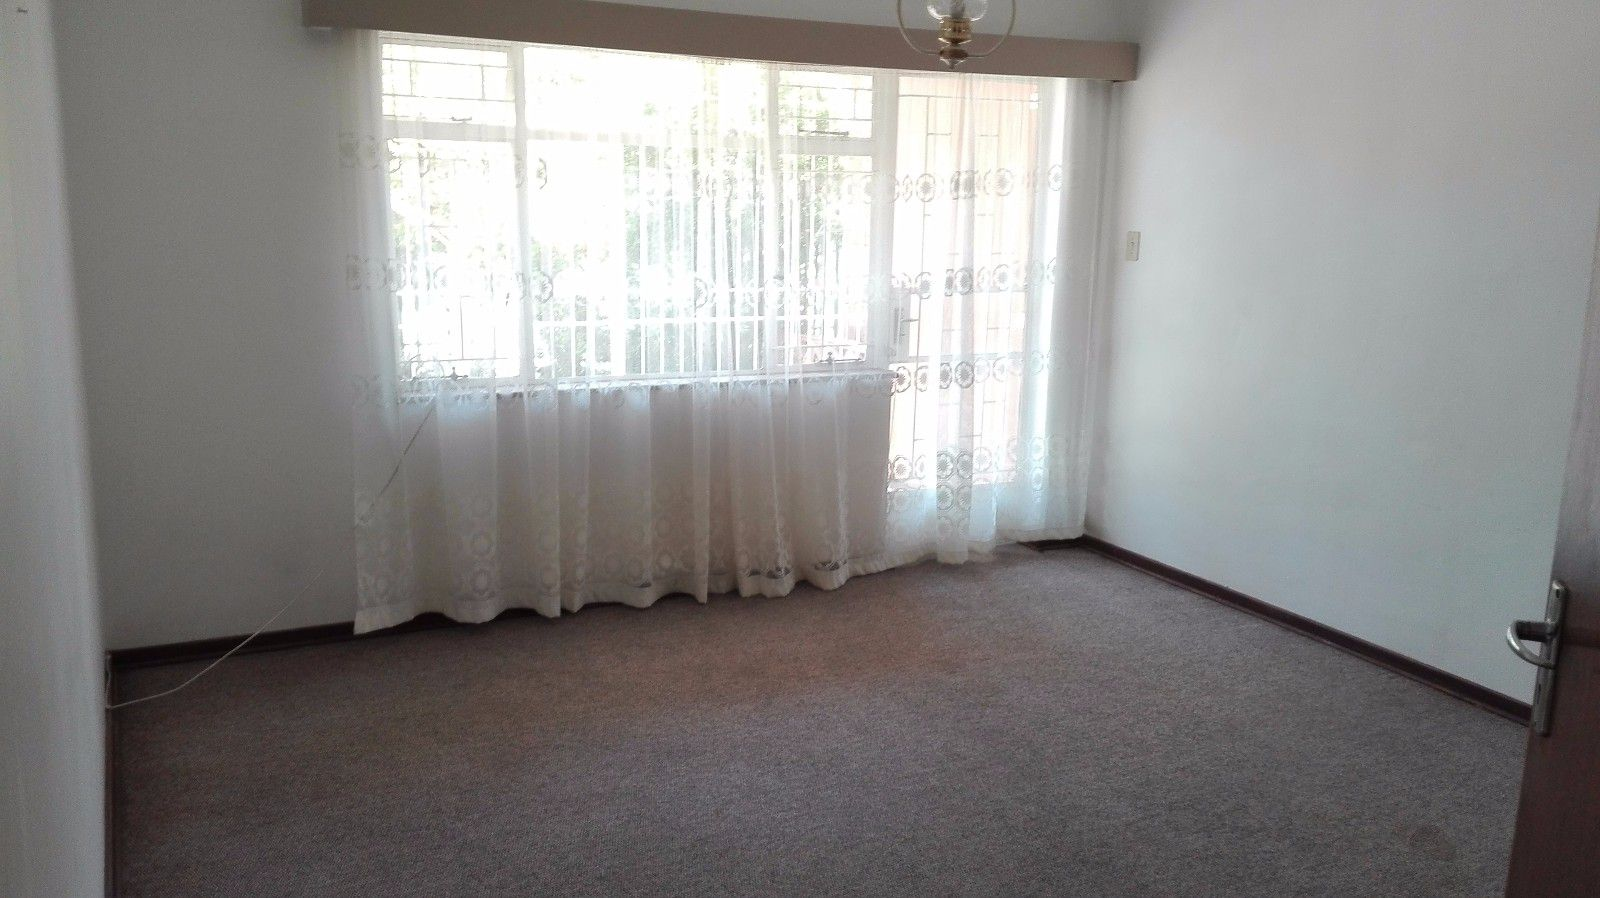 Potchefstroom Central property for sale. Ref No: 13398906. Picture no 10